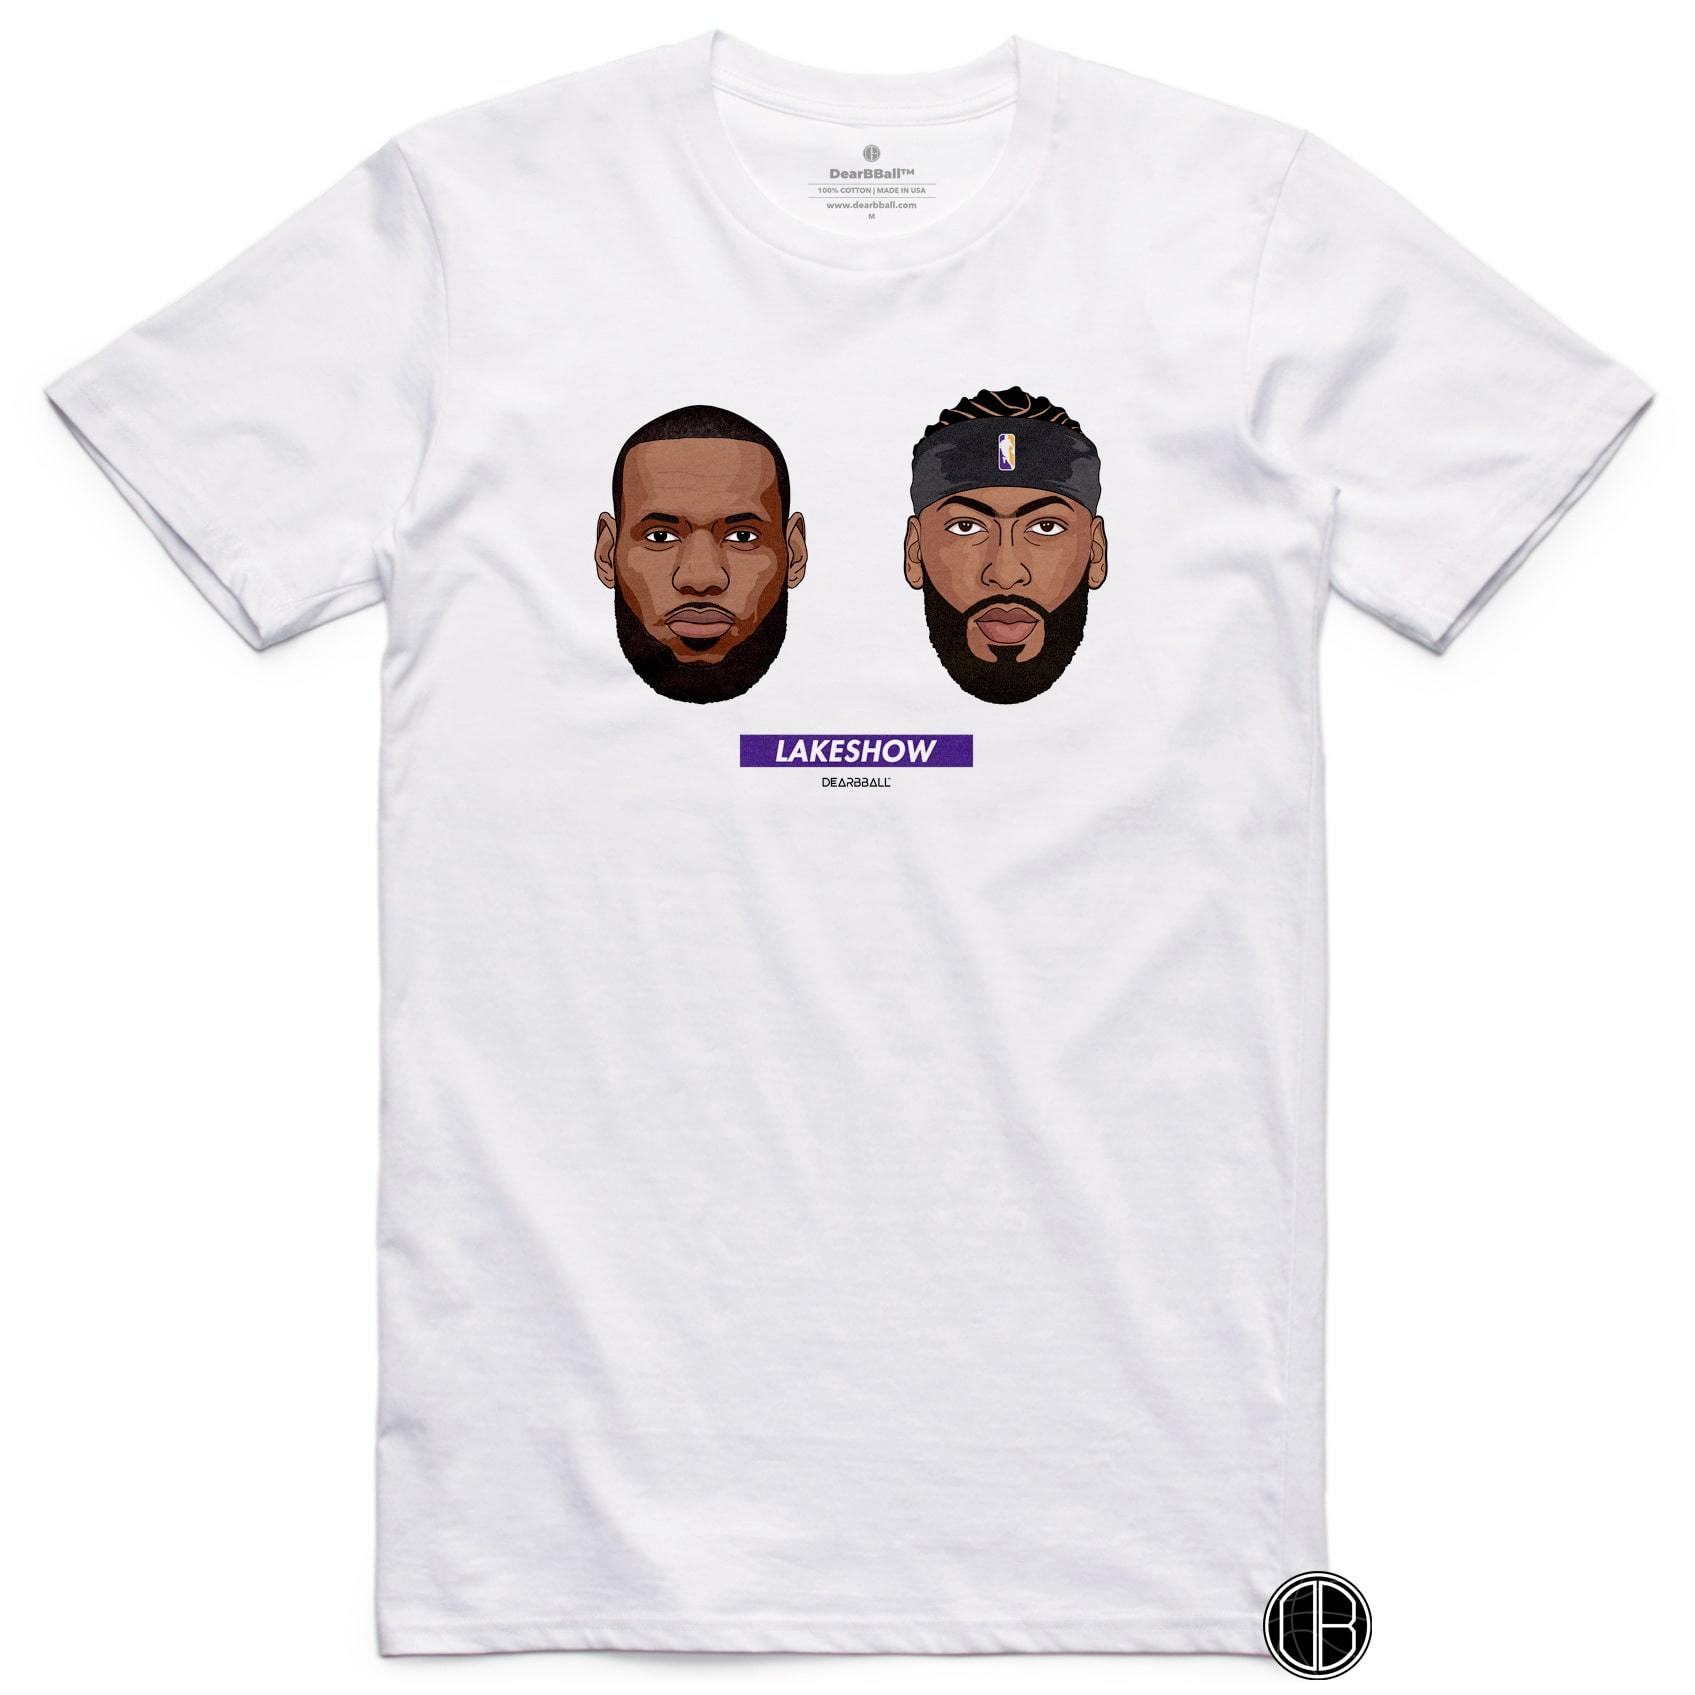 Lebron_James_And_Anthony_Davis_Shirt_LAKESHOW_Dearbball_White